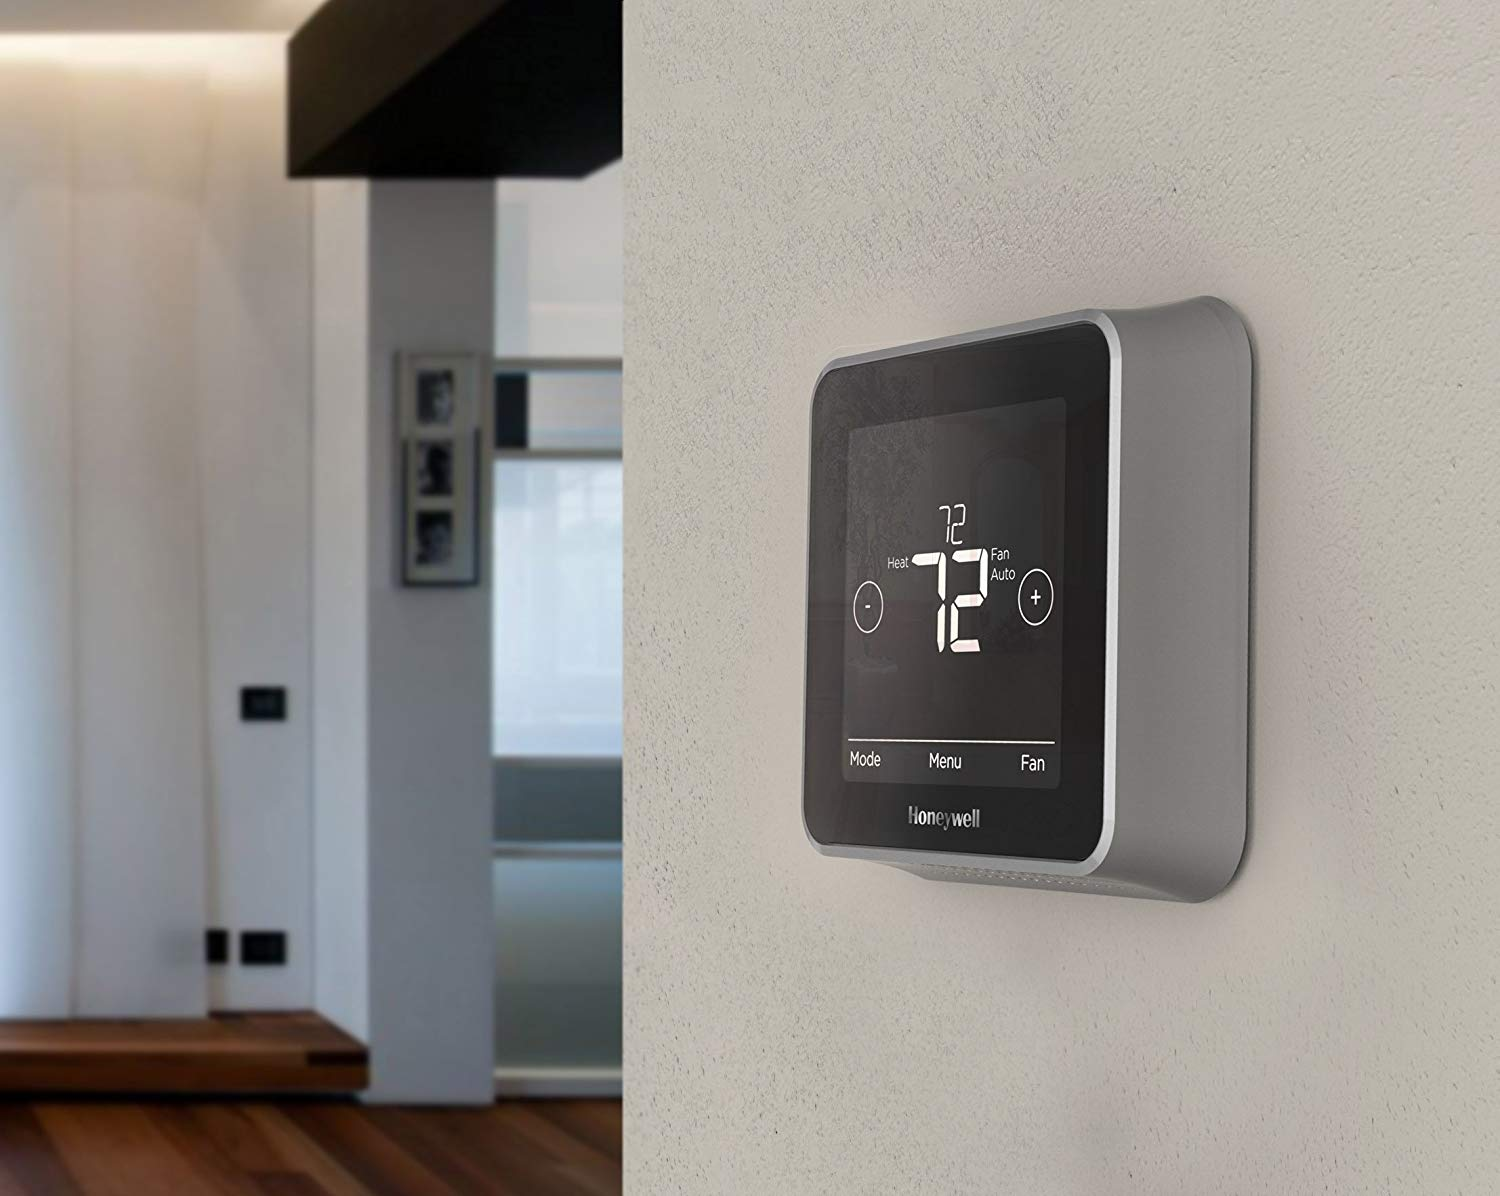 The Benefits of a Smart Thermostat